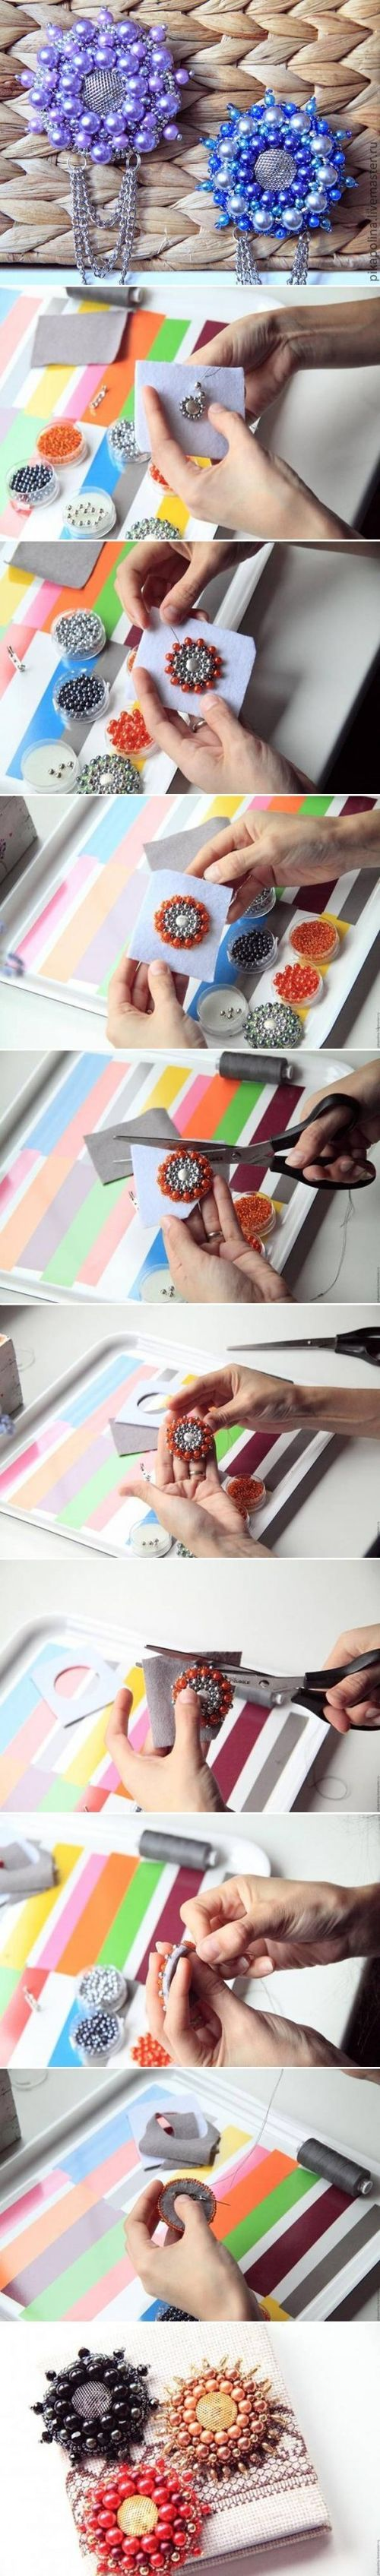 How To Make Beads Flower Brooch step by step DIY tutorial instructions / How To Instructions on imgfave